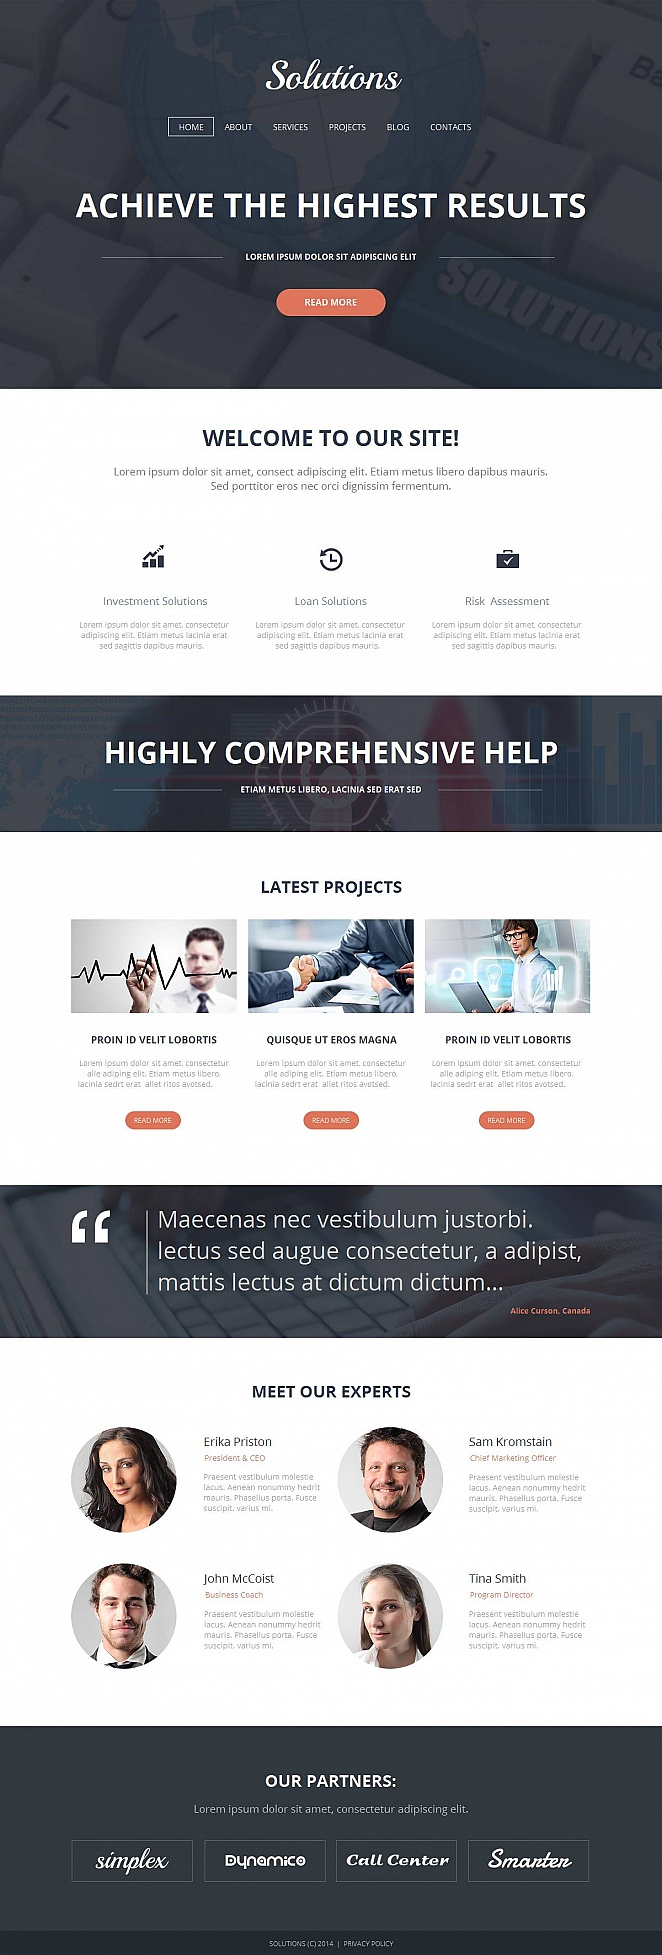 Consulting Website Design with CMS - image